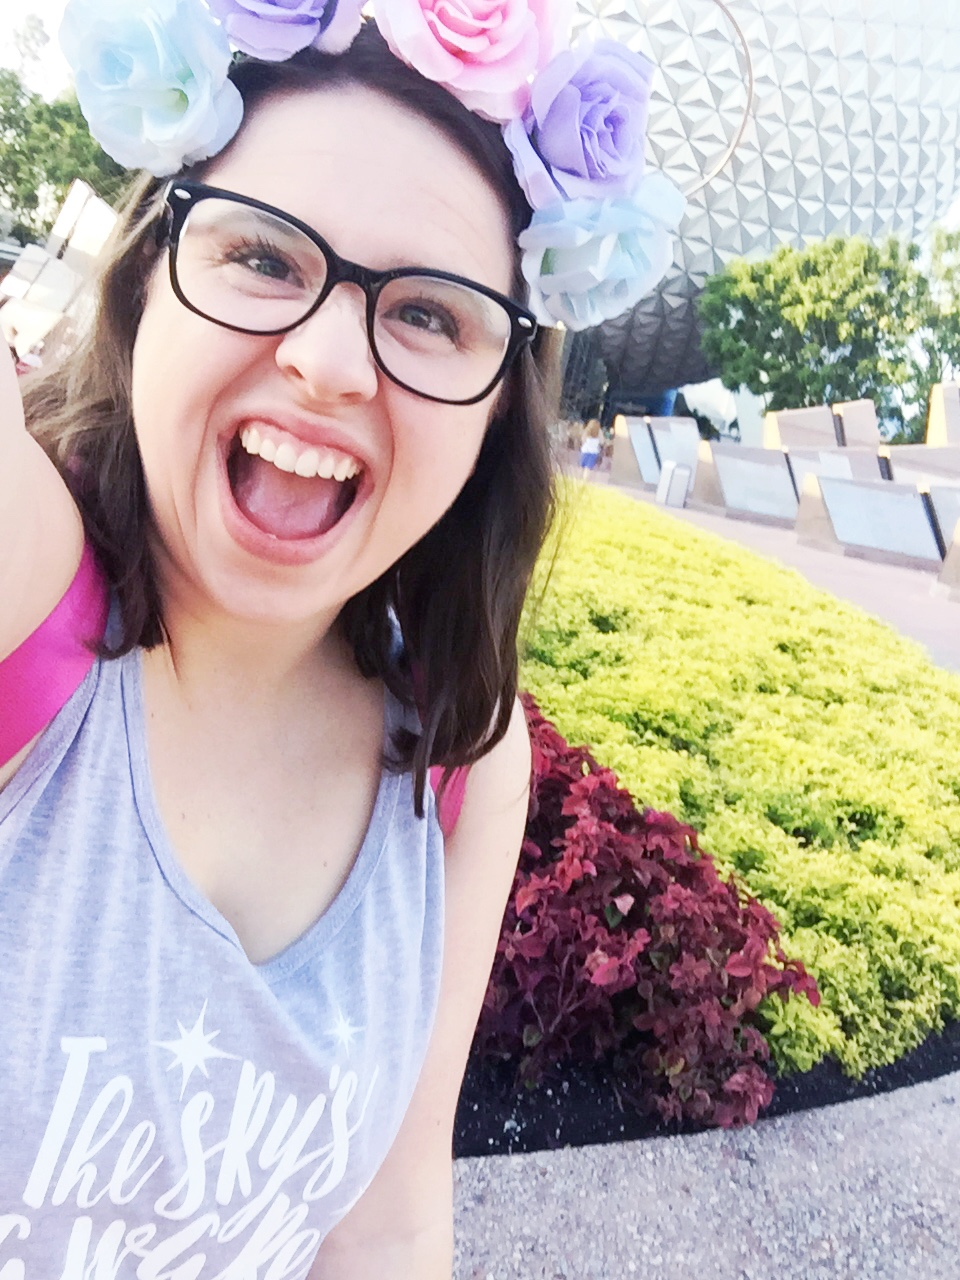 Pumped for an Epcot morning!